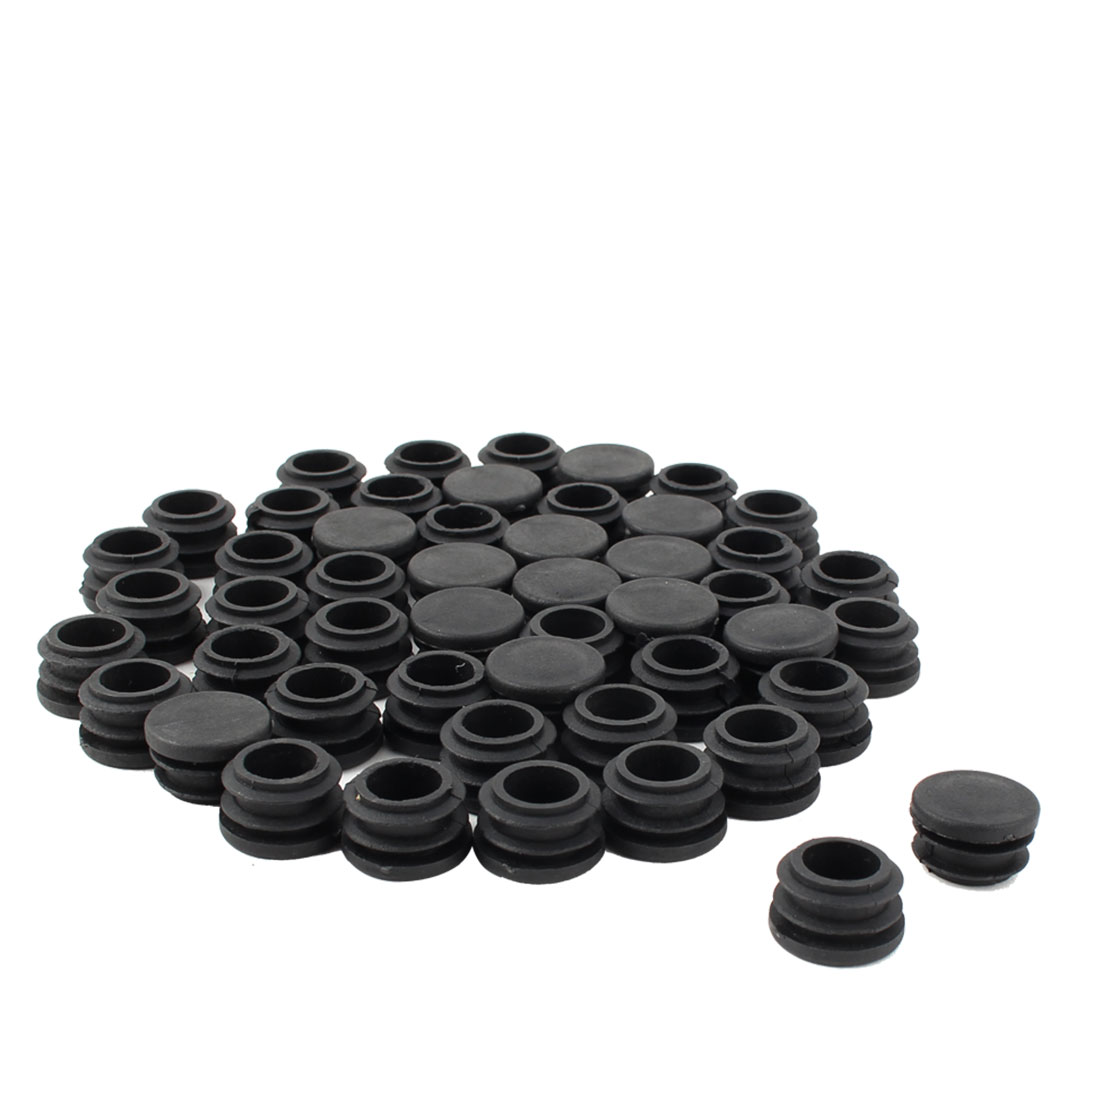 Furniture Table Chair Legs Plastic Round Tube Pipe Insert Cap Cover Stopper Black 21mm Dia 50pcs